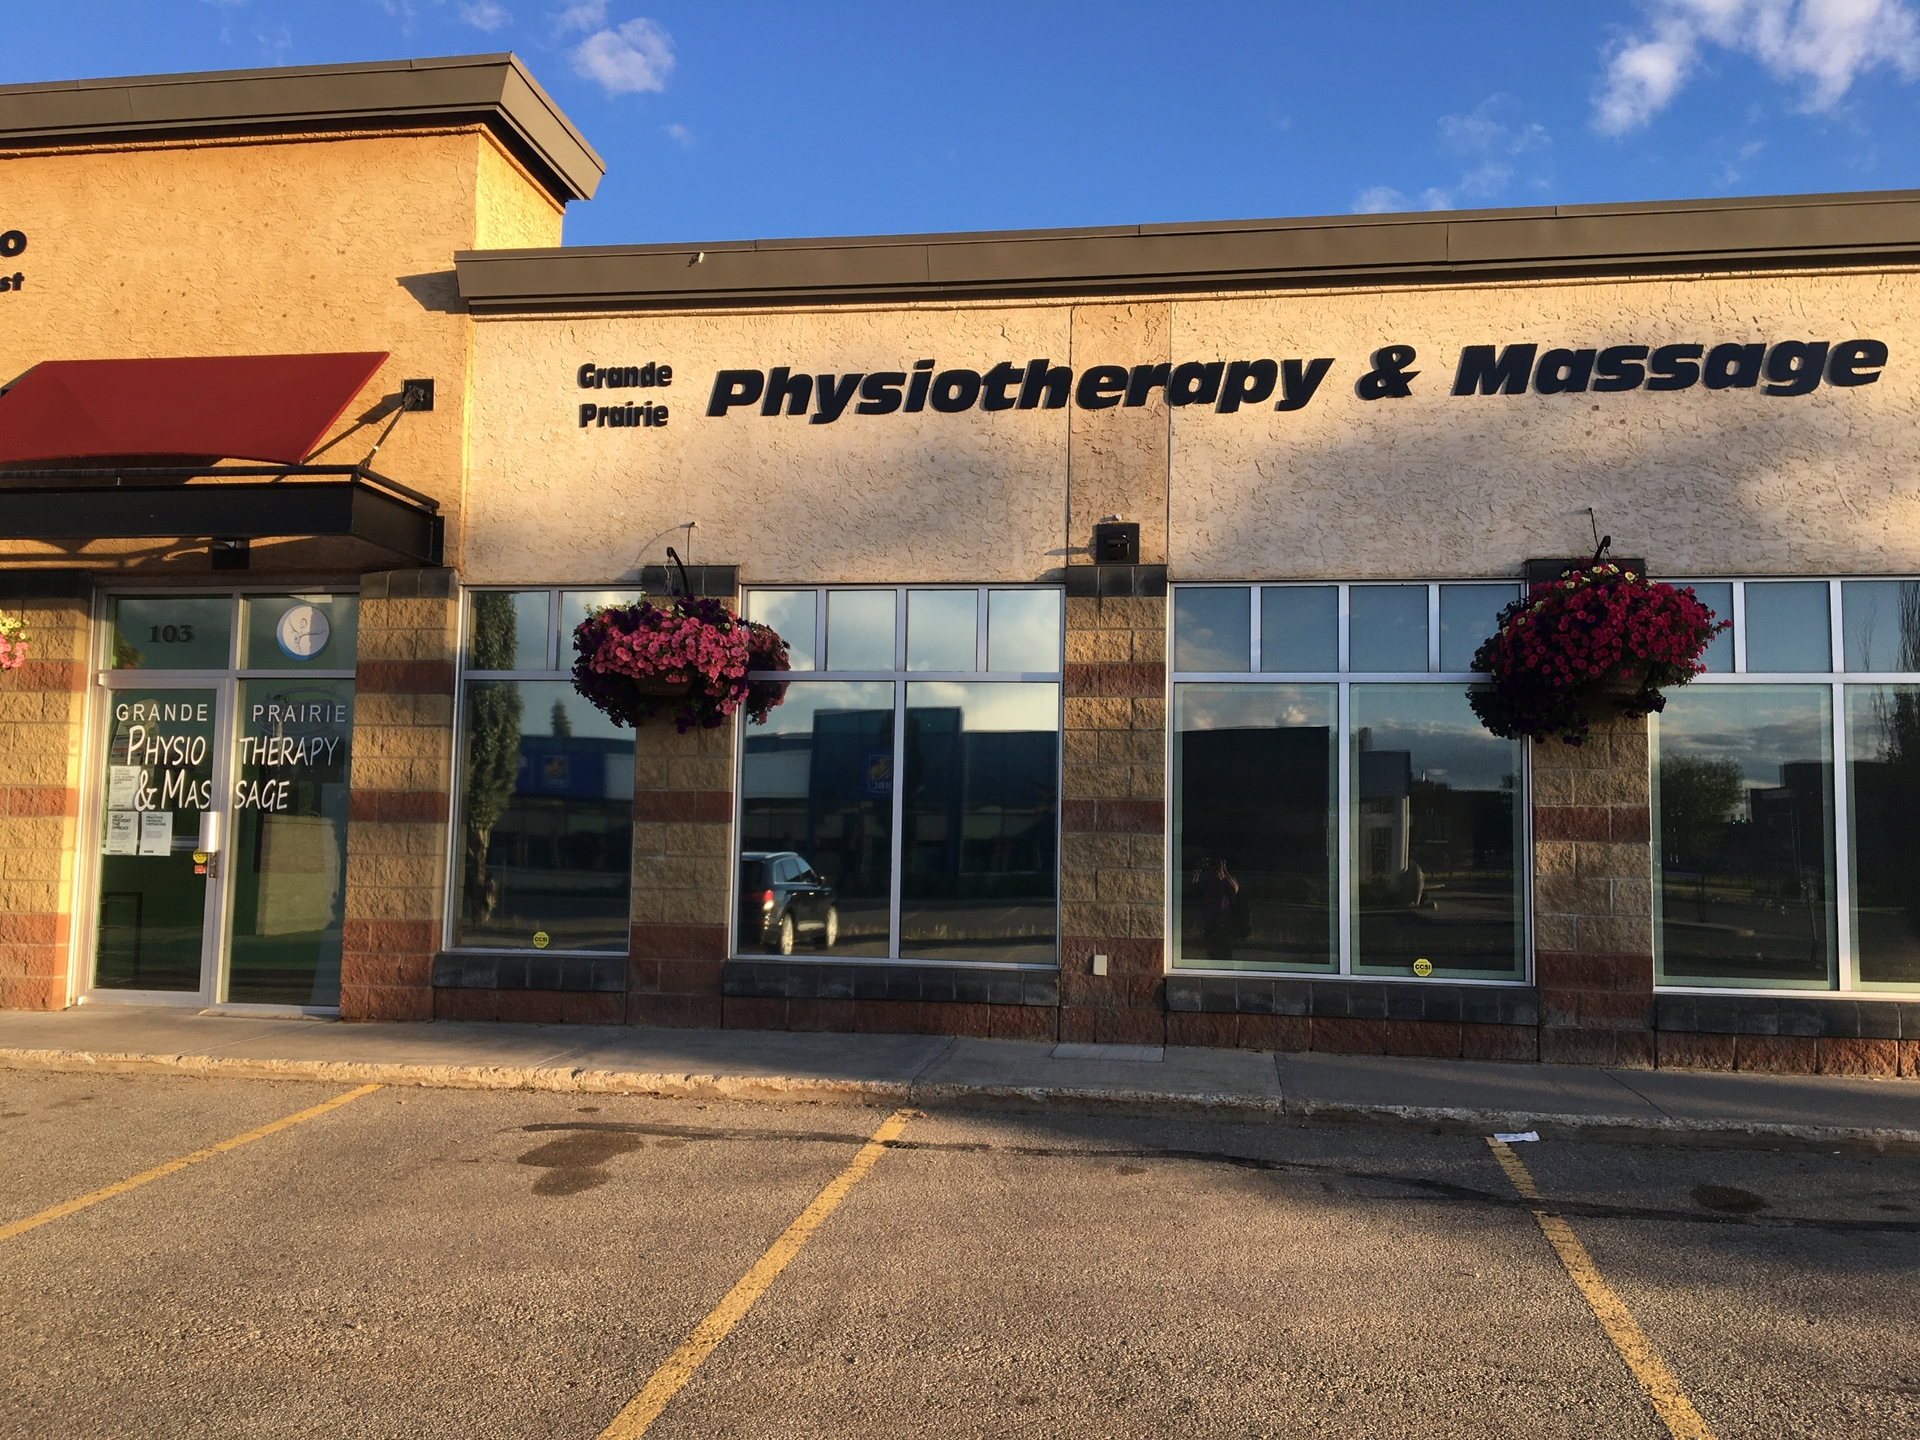 Grande Prairie Physiotherapy and Massage (@physiotherapymassage) Cover Image